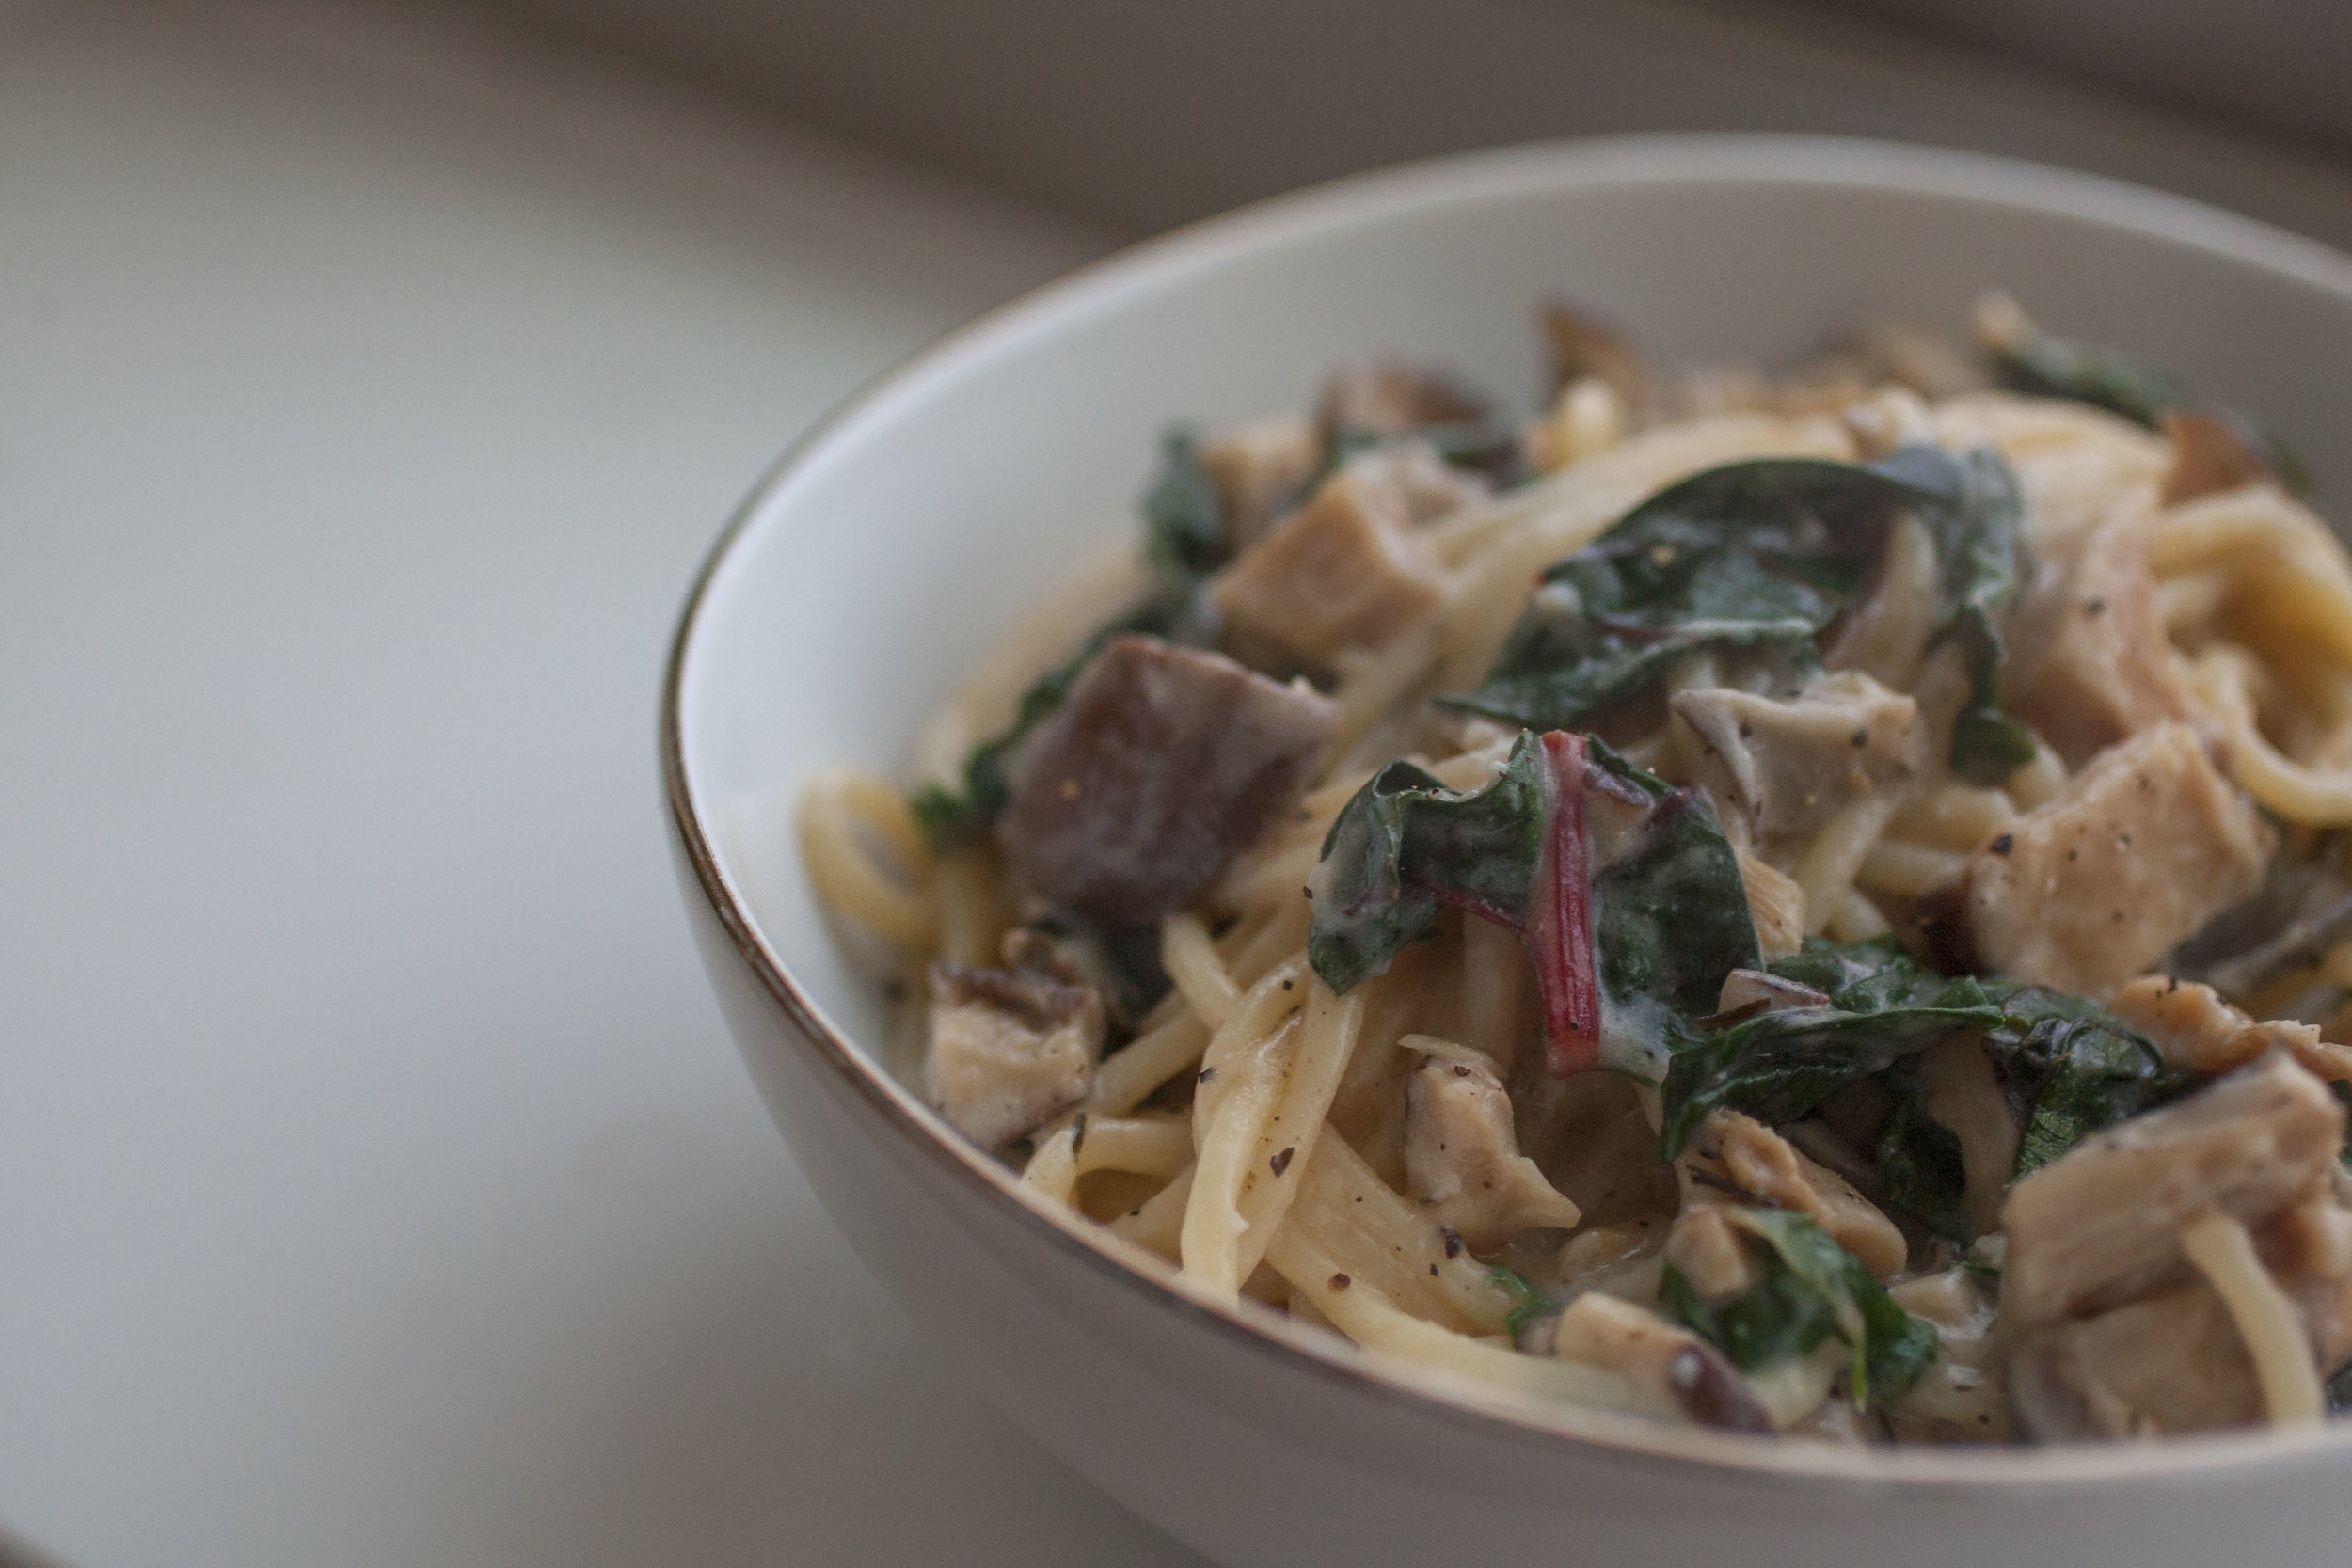 Produce On Parade - Creamy Shiitake & Chard Pasta - There isn't a dish much more comforting than a big bowl of hot mushroom spaghetti in a rich and creamy garlic sauce. This is the absolute perfect meal for cold winter nights! It's remarkable enough for a special occasion but easy enough for a weeknight and is sure to please everyone.